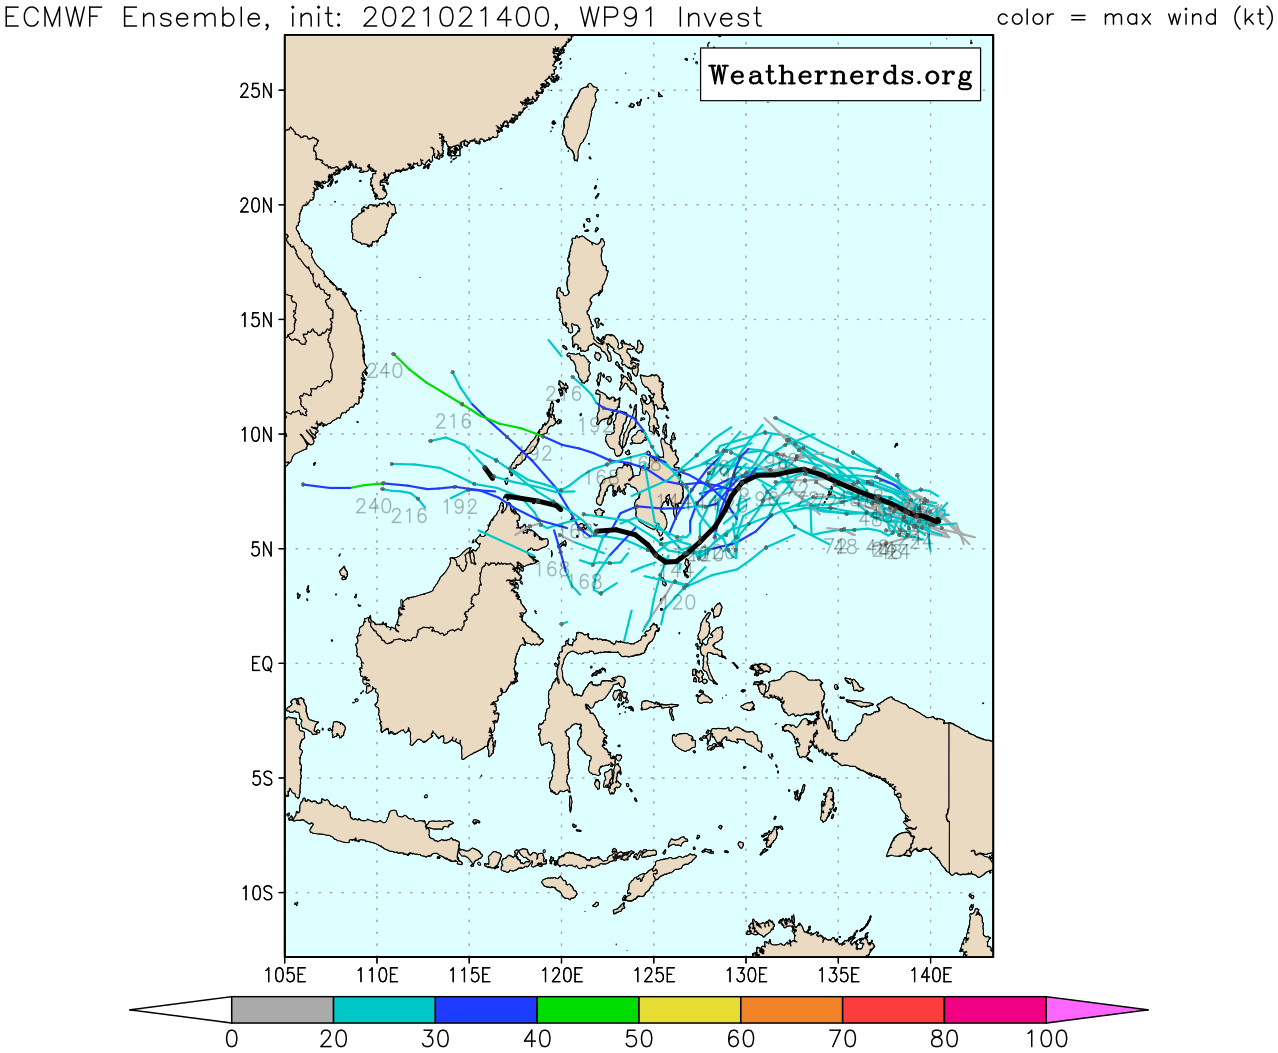 INVEST 91W. UPPER LEVEL ANALYSIS INDICATES INVEST  91W IS IN A MARGINAL ENVIRONMENT FOR POTENTIAL TROPICAL DEVELOPMENT  WITH FAIR NORTHWESTWARD OUTFLOW, MODERATE (15-20KT) VERTICAL WIND  SHEAR, AND WARM (29-30C) SEA SURFACE TEMPERATURES. GLOBAL MODELS ARE  IN AGREEMENT THAT INVEST 91W WILL TRACK WESTWARD WITH POSSIBLE  CONSOLIDATION OVER THE NEXT 5 DAYS.